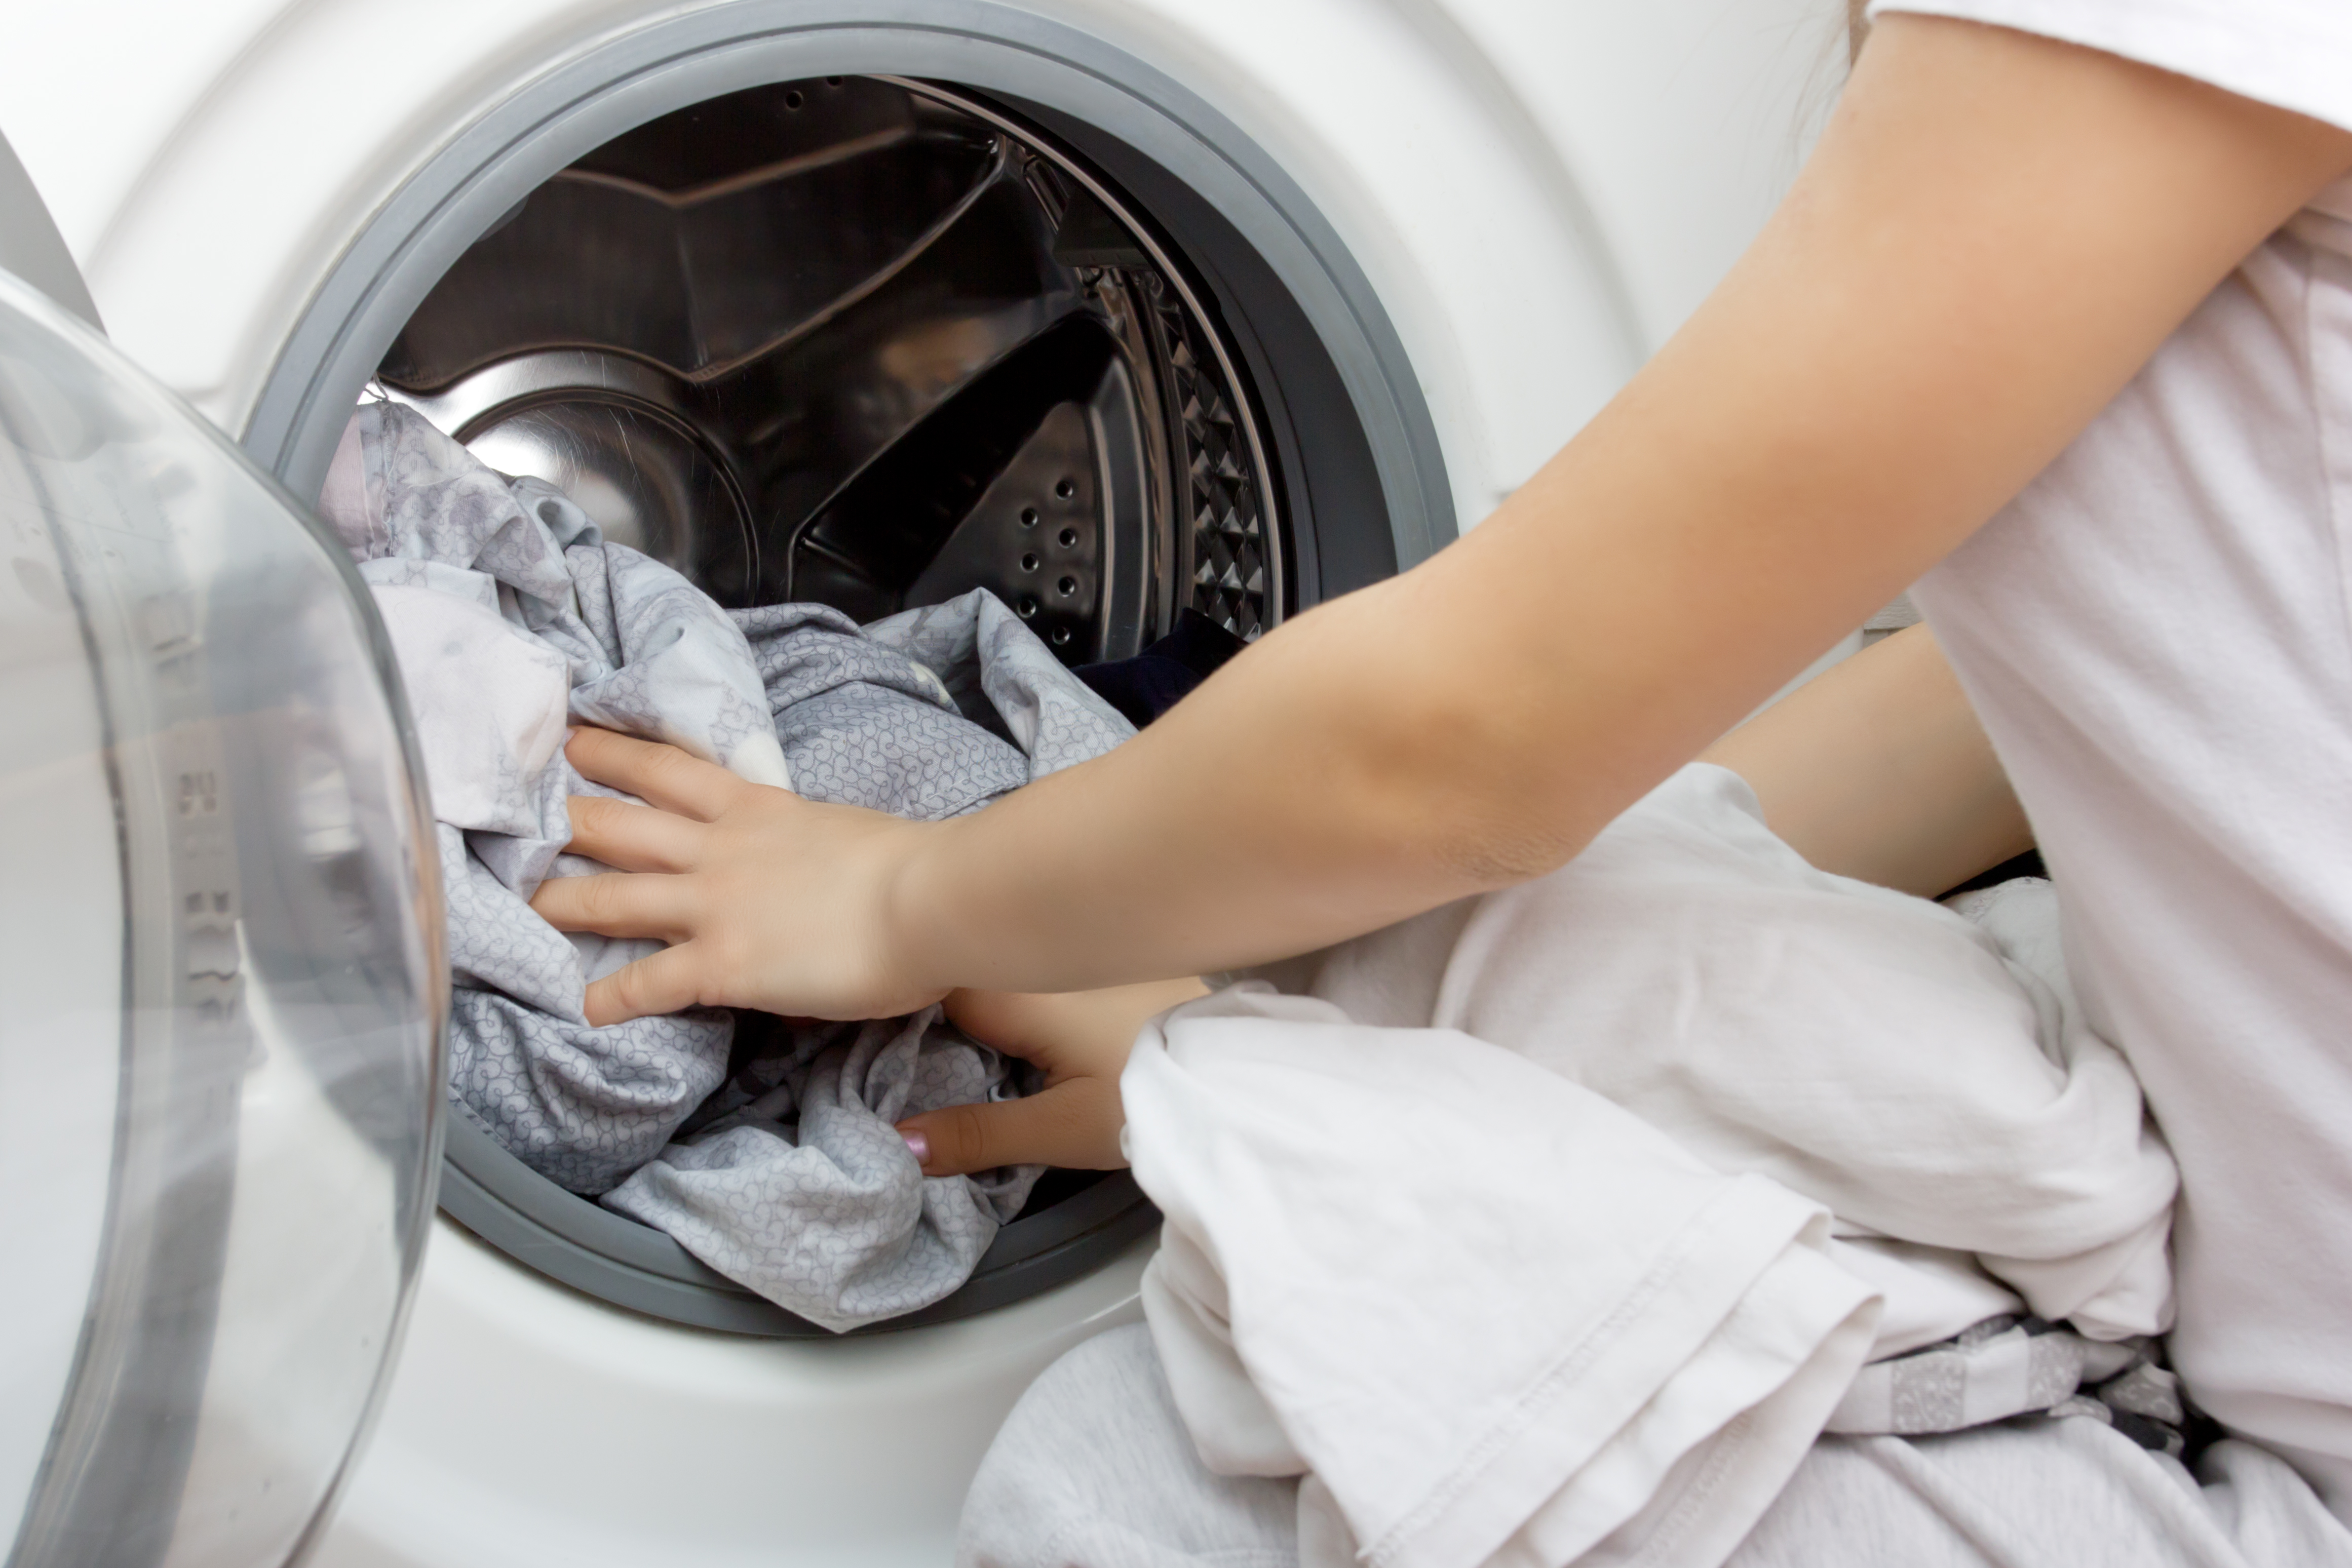 What Would Cause Holes in Clothes in a Front Load Washing Machine